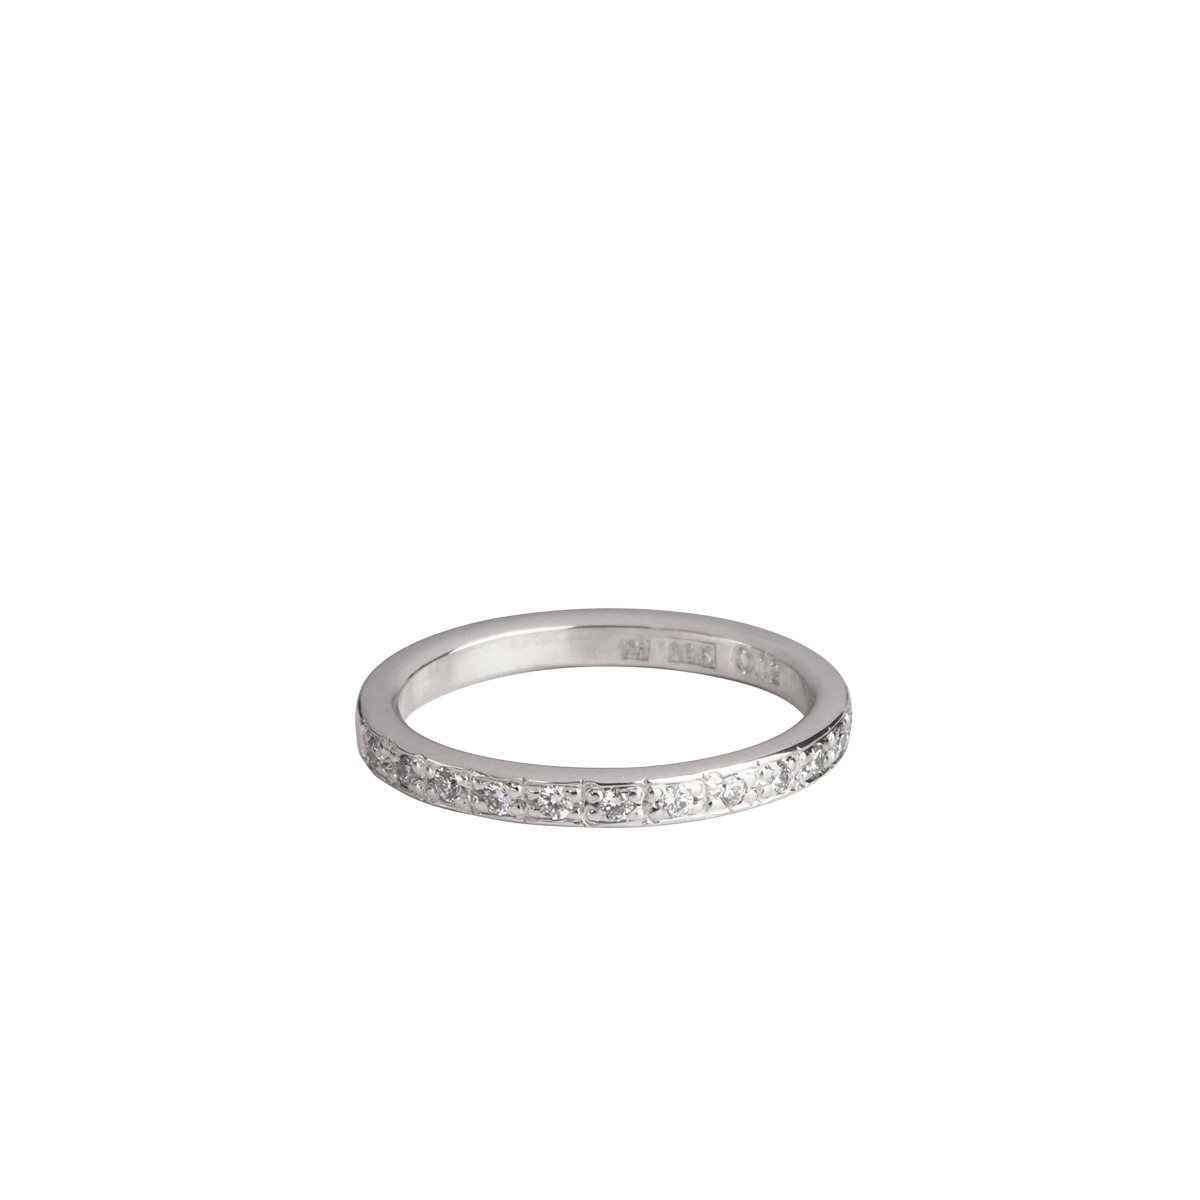 WHITE GOLD DIAMOND BAND RING in the group SHOP at EMMA ISRAELSSON (ring087)